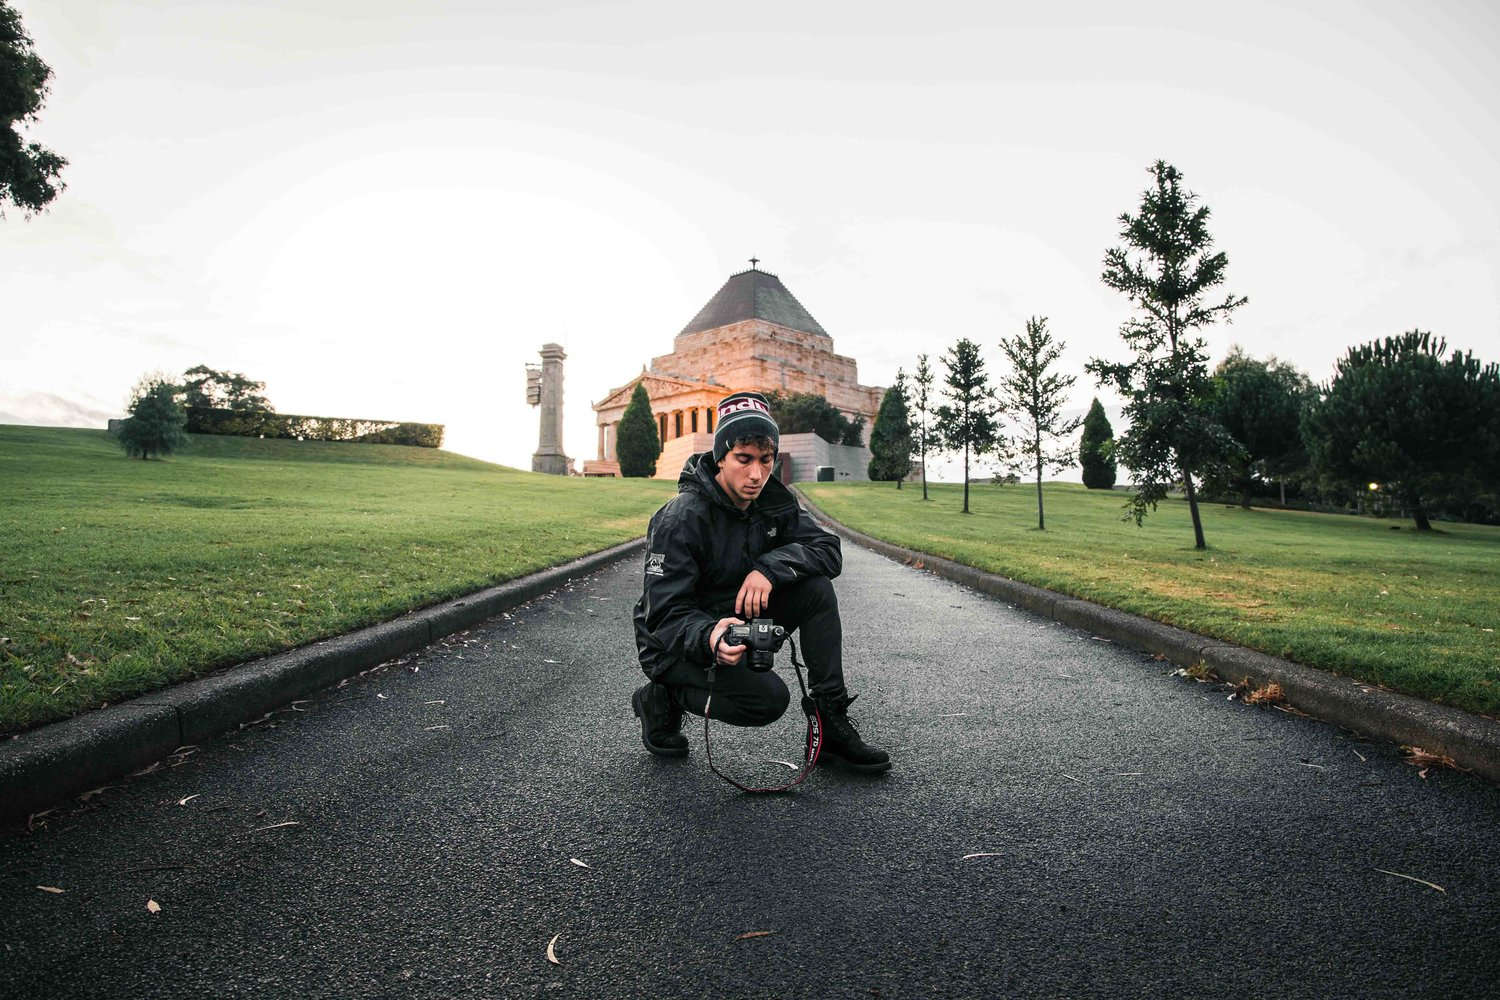 The Shrine of Remembrance is just across from the Botanical Gardens.